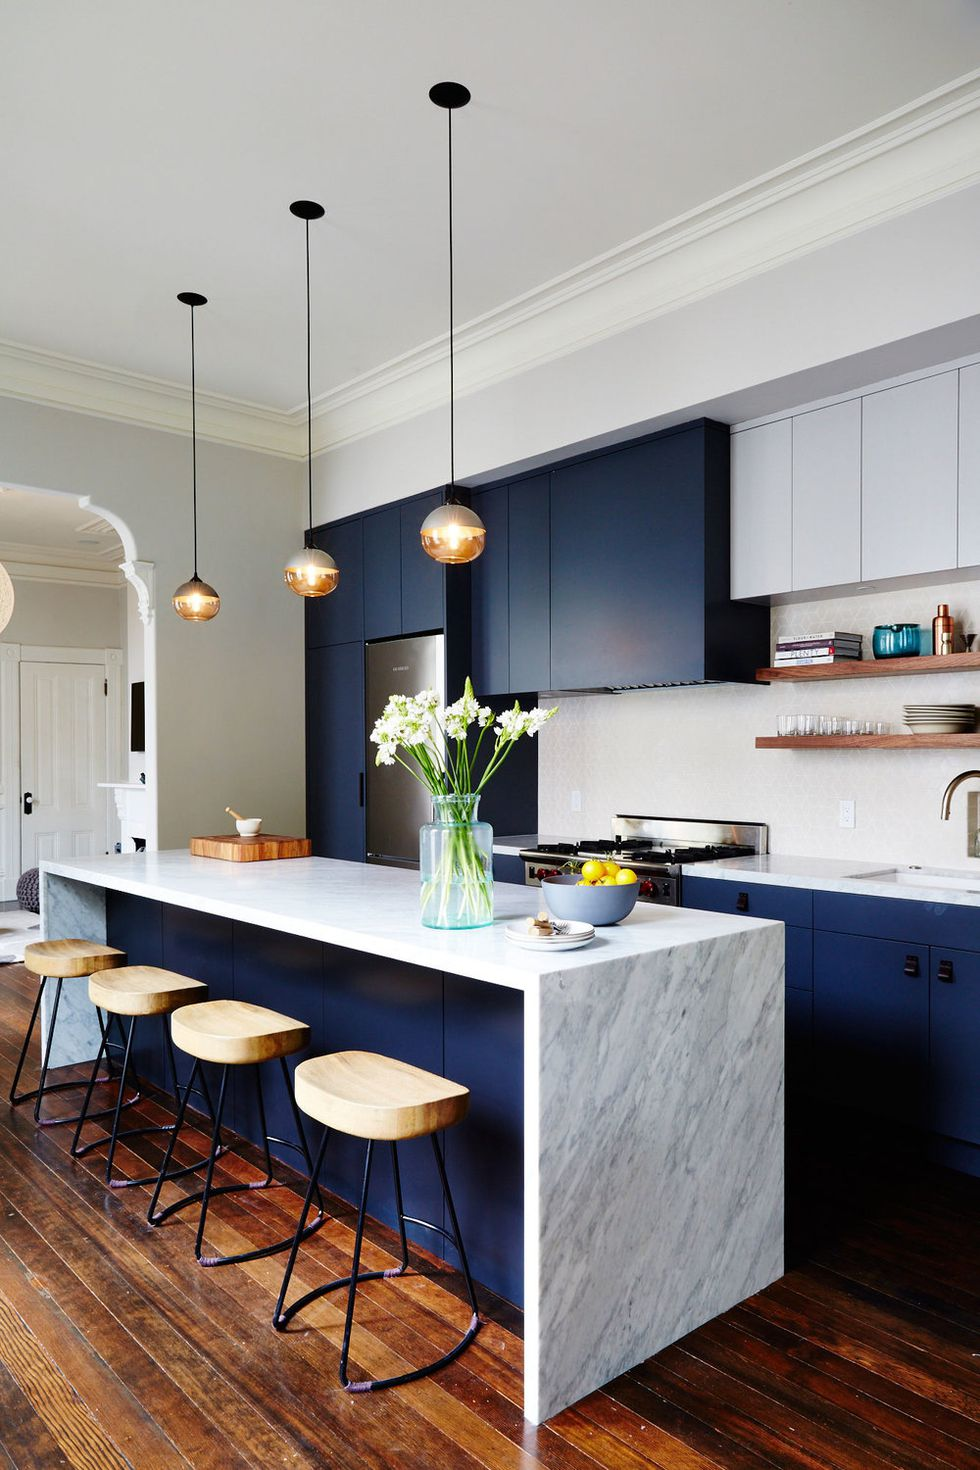 5 Kitchen Lighting Ideas To Transform Your Home